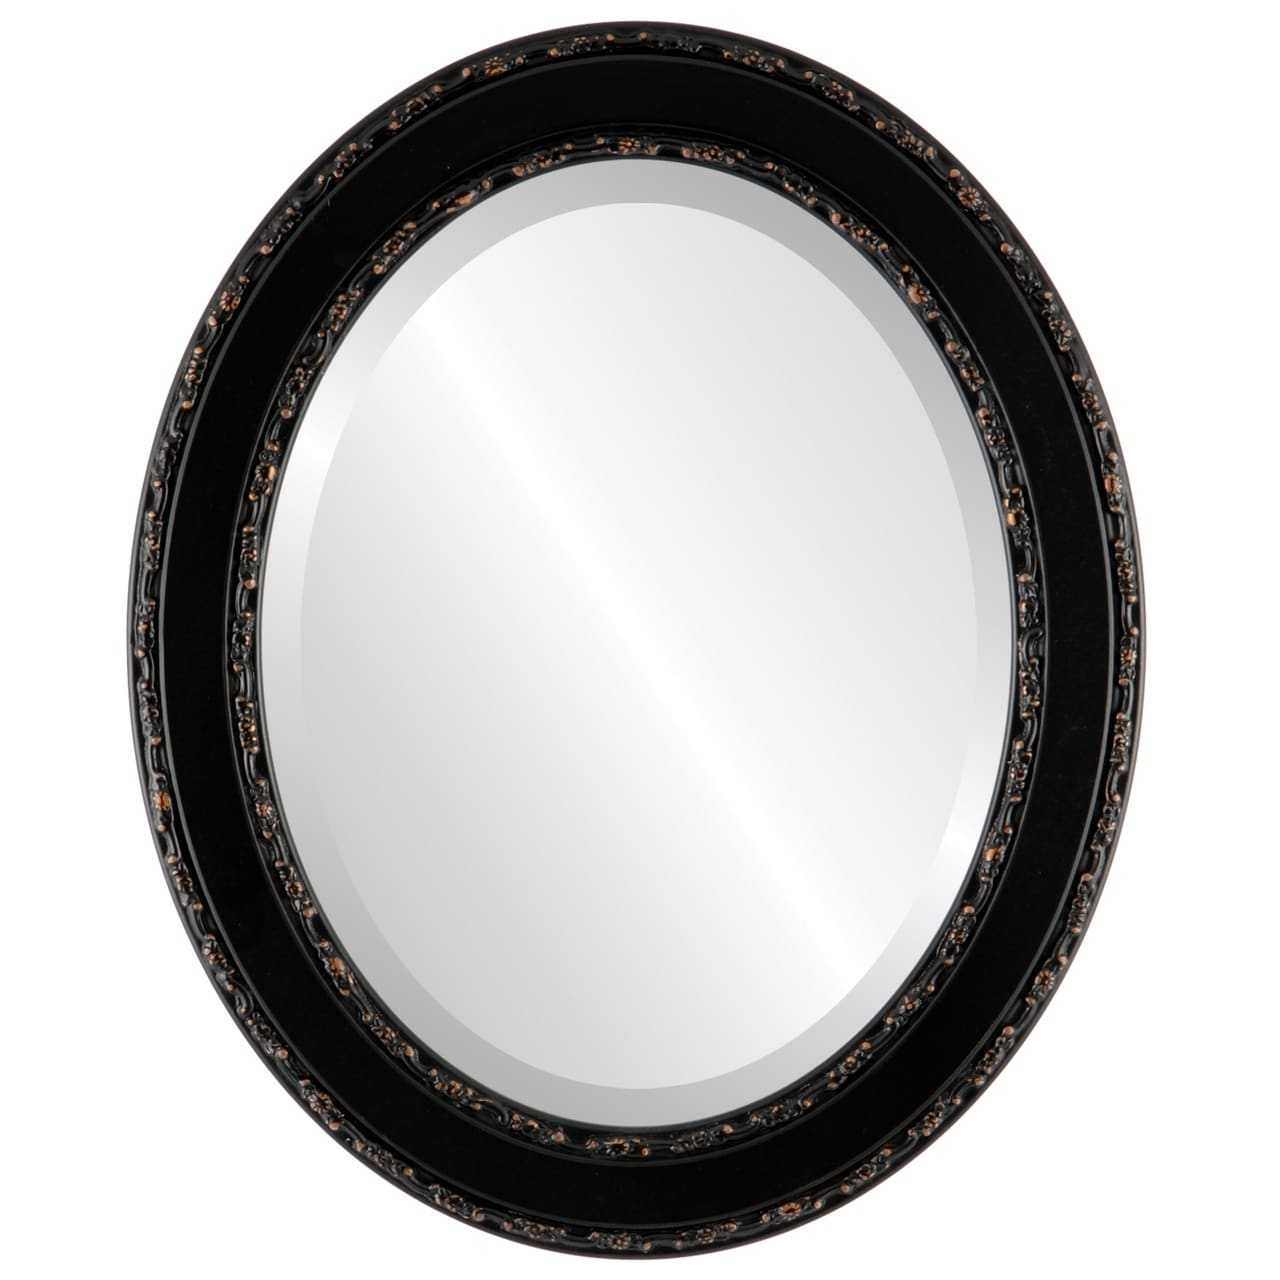 The Oval and Round Mirror Store Monticello Framed Oval Mirror in Rubbed Bronze Antique Bronze by Overstock